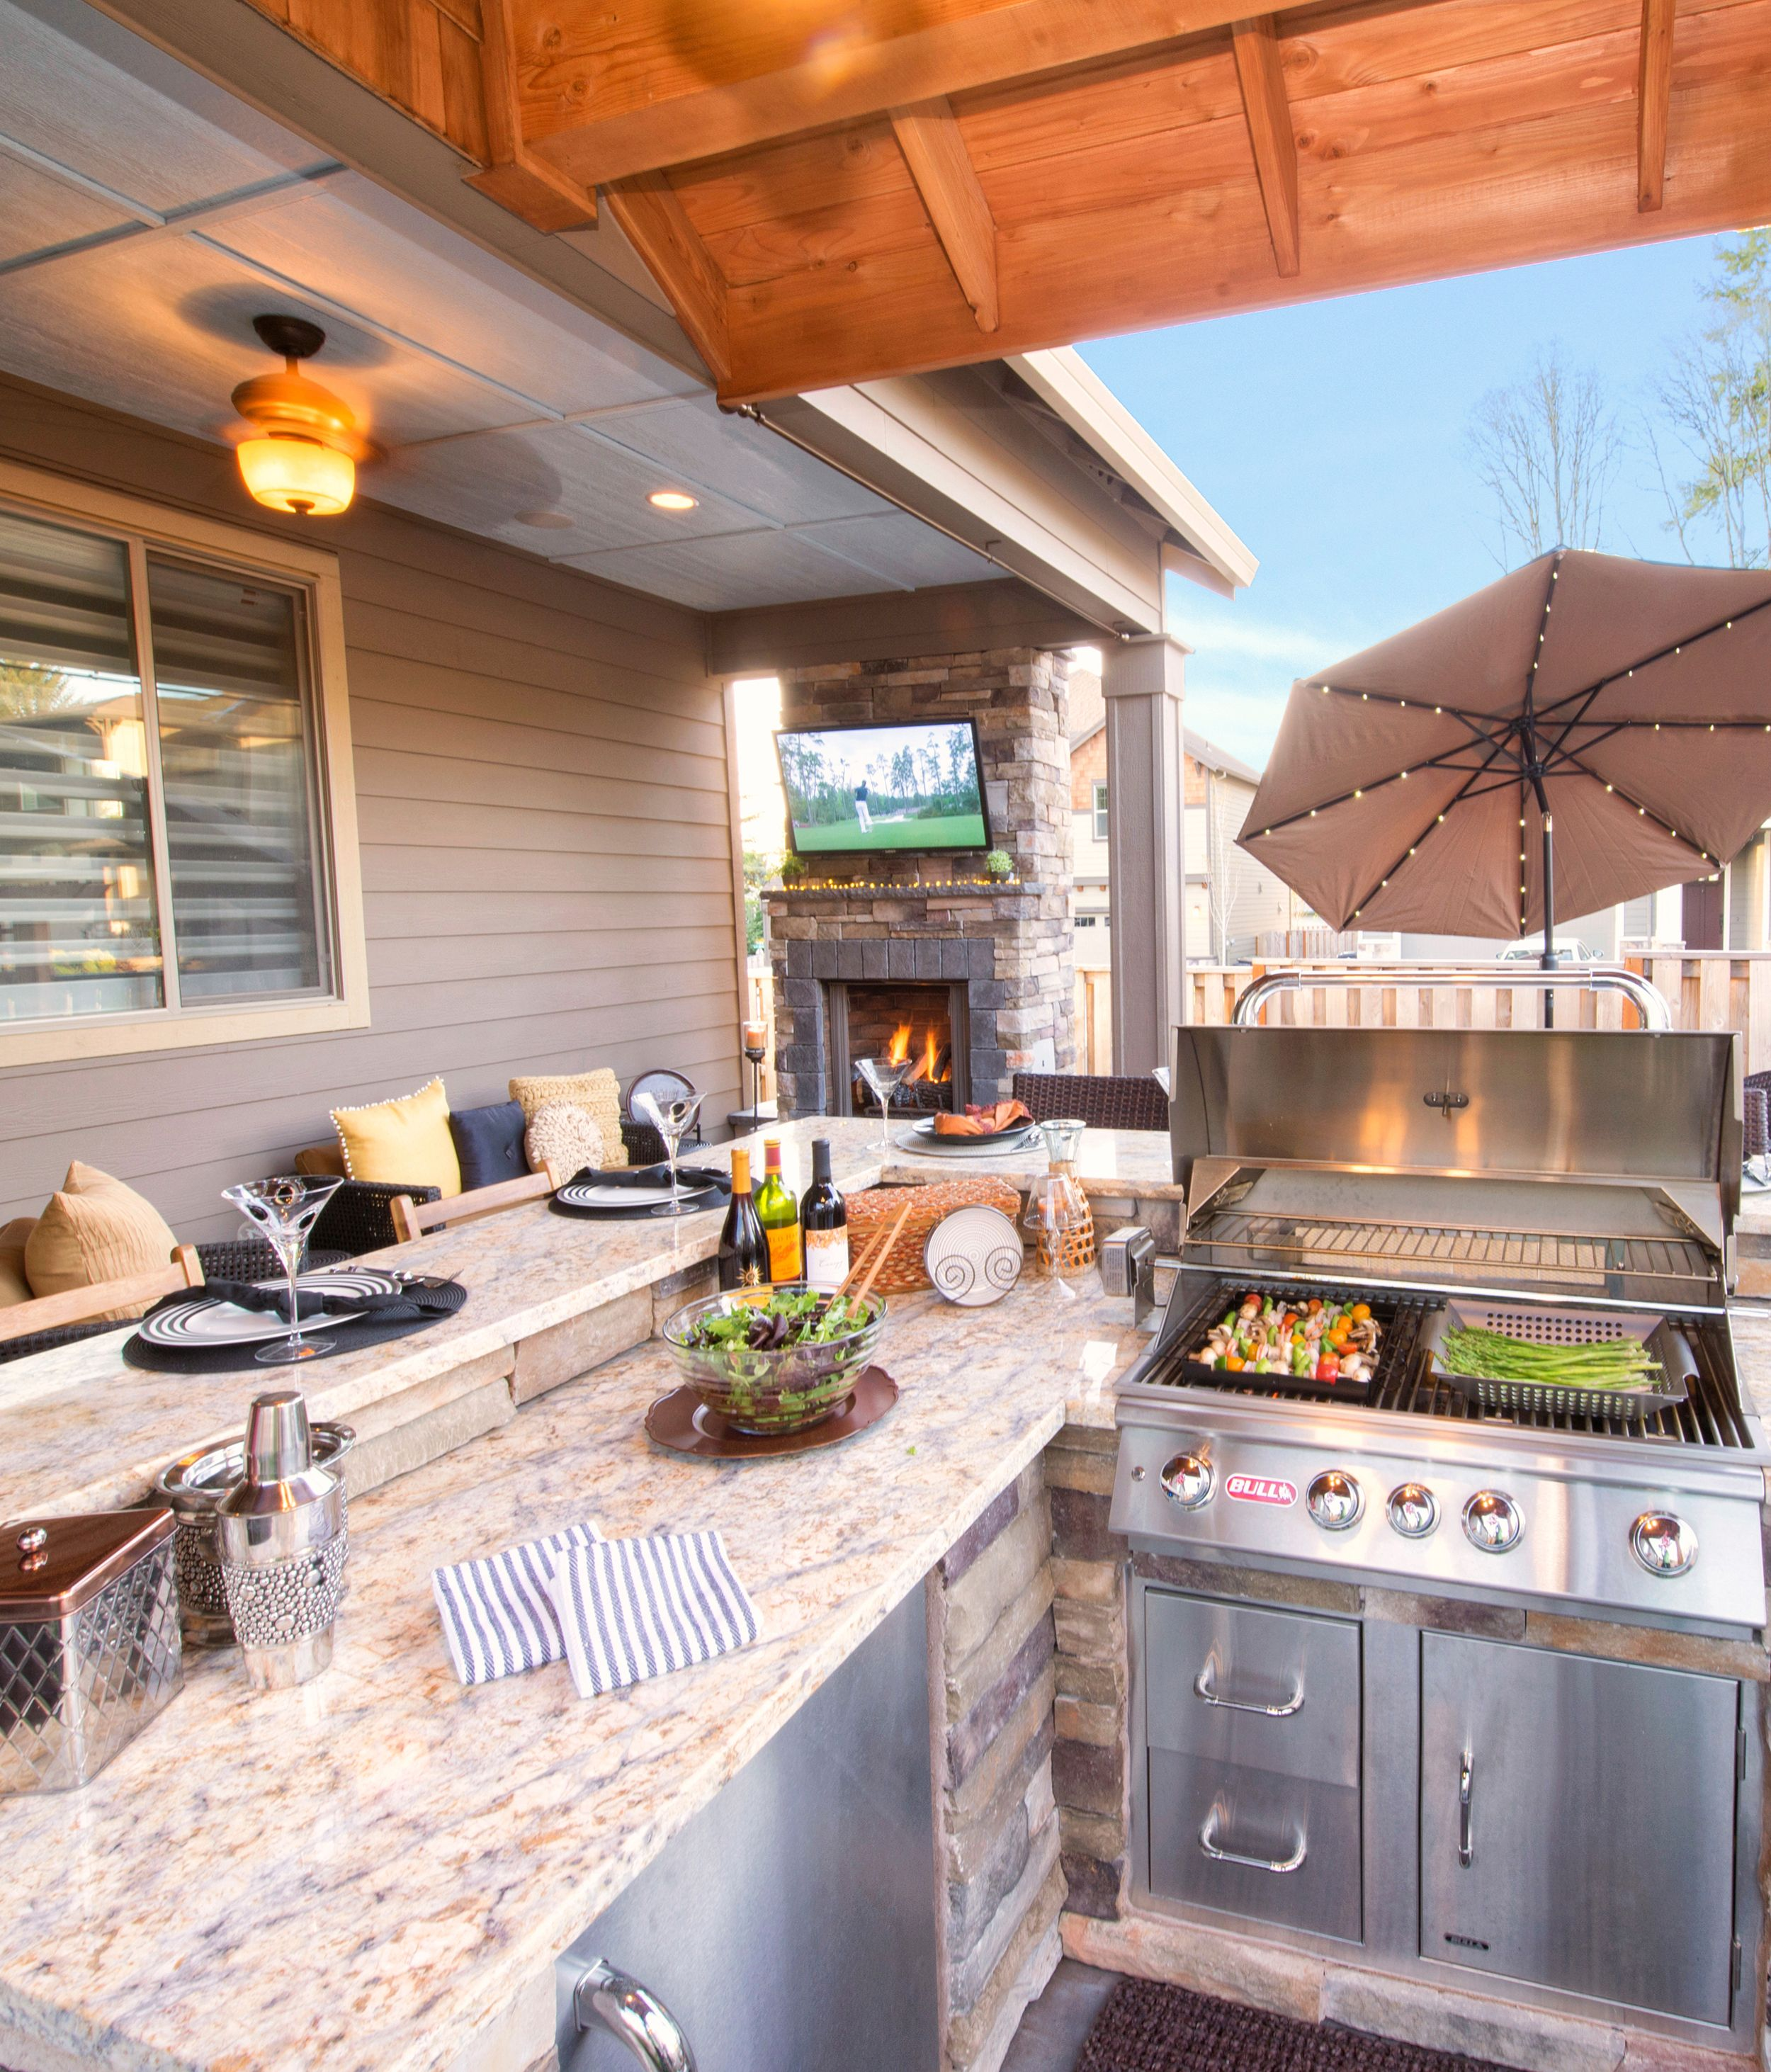 Paradise Outdoor Kitchens: Pin By Paradise Restored On Our Projects